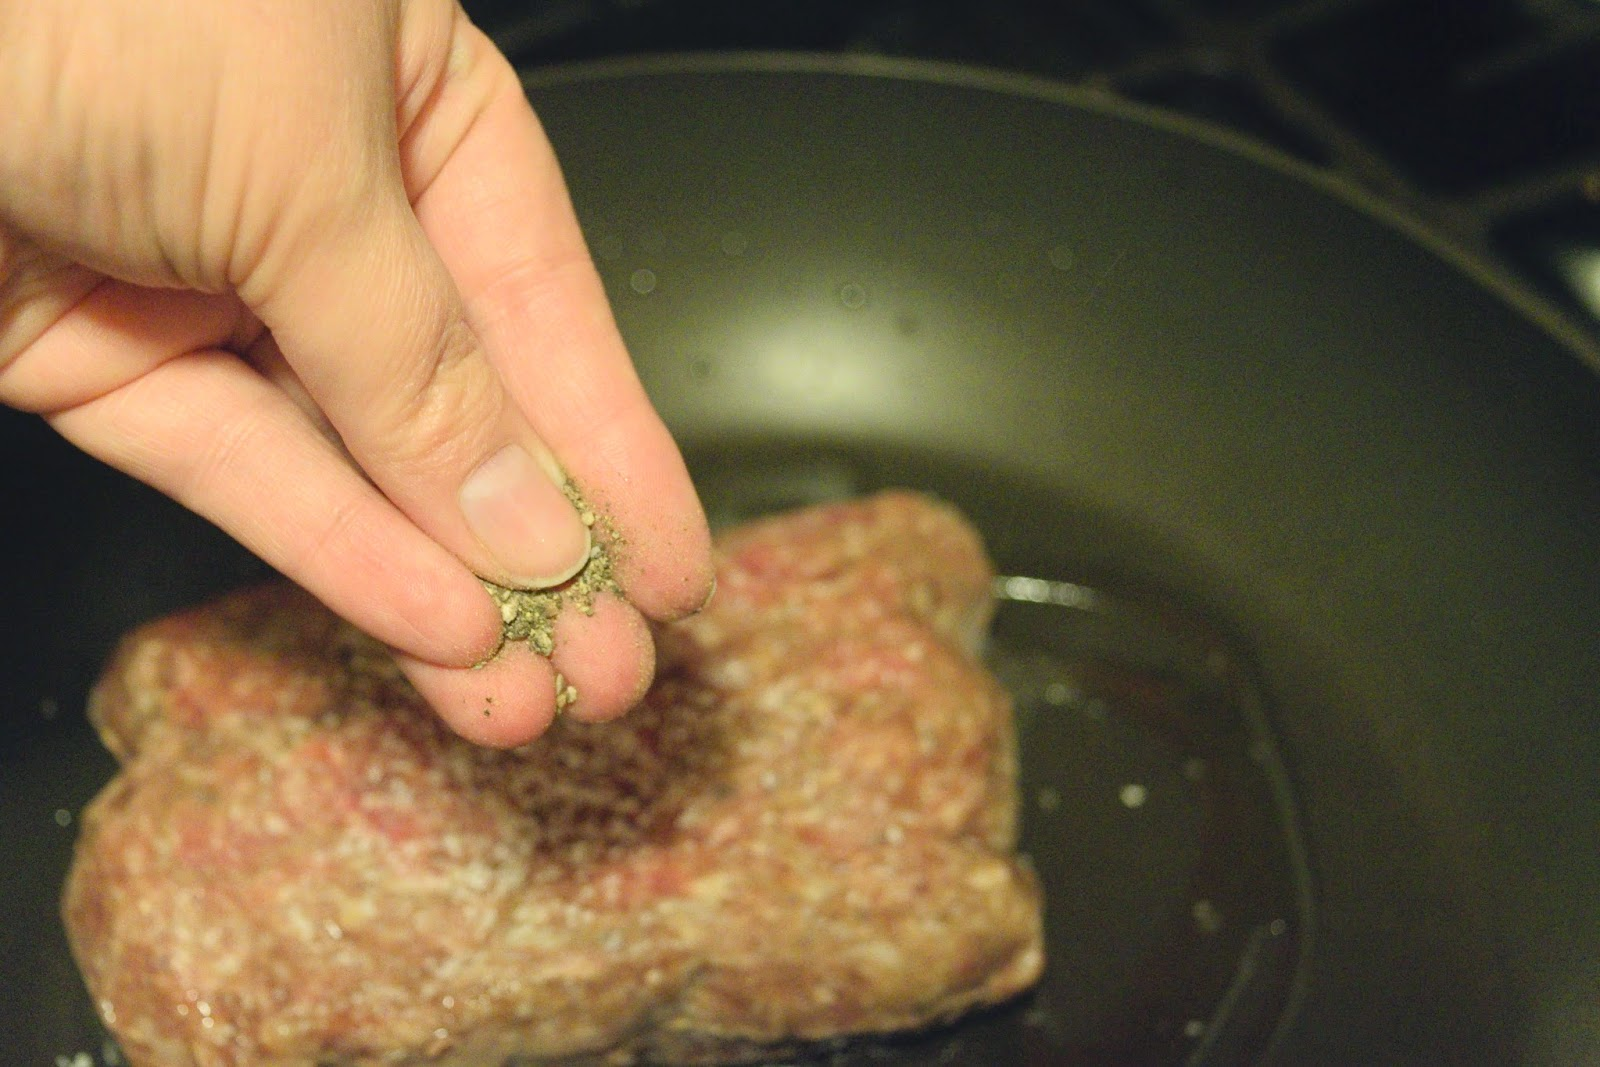 Ground beef in the pan being seasoned with pepper.